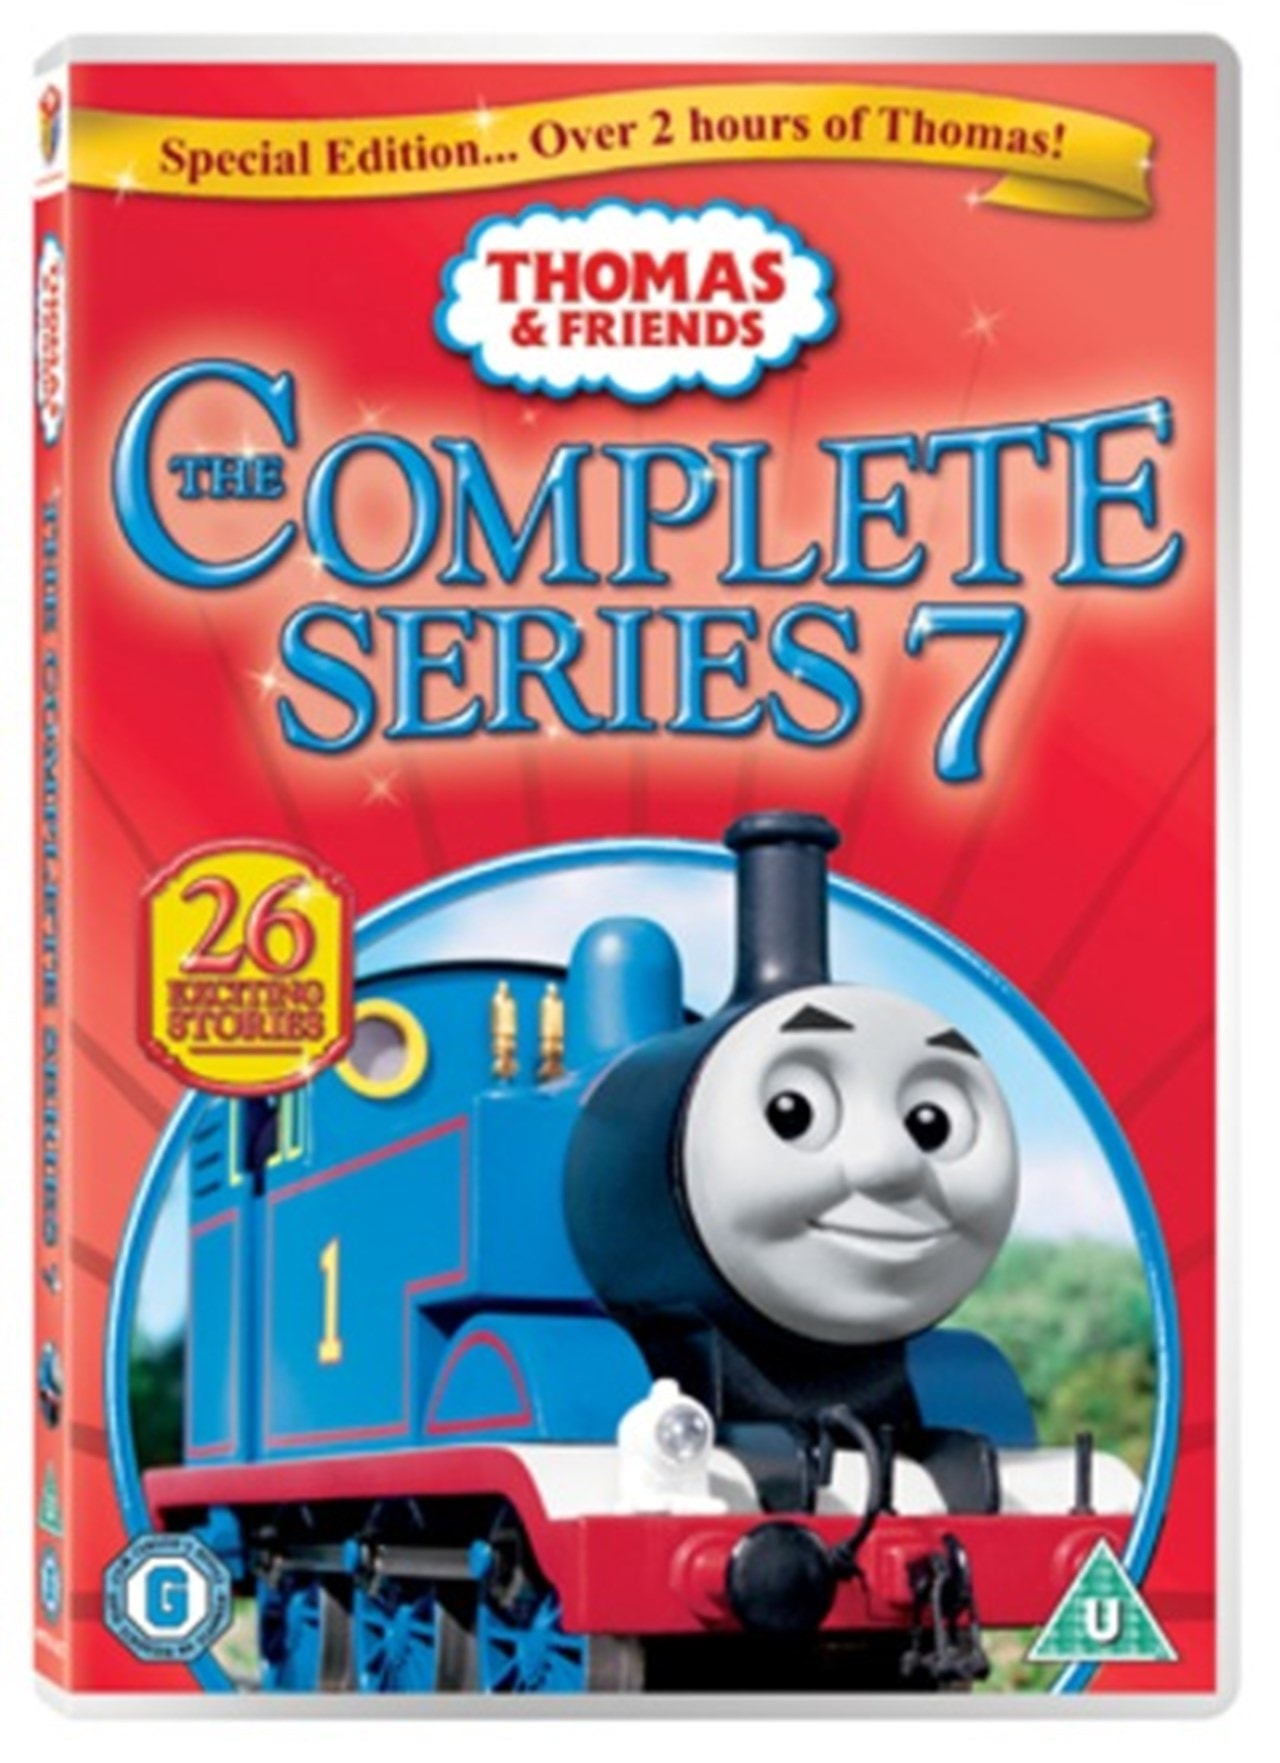 Thomas & Friends: The Complete Series 7 - 1